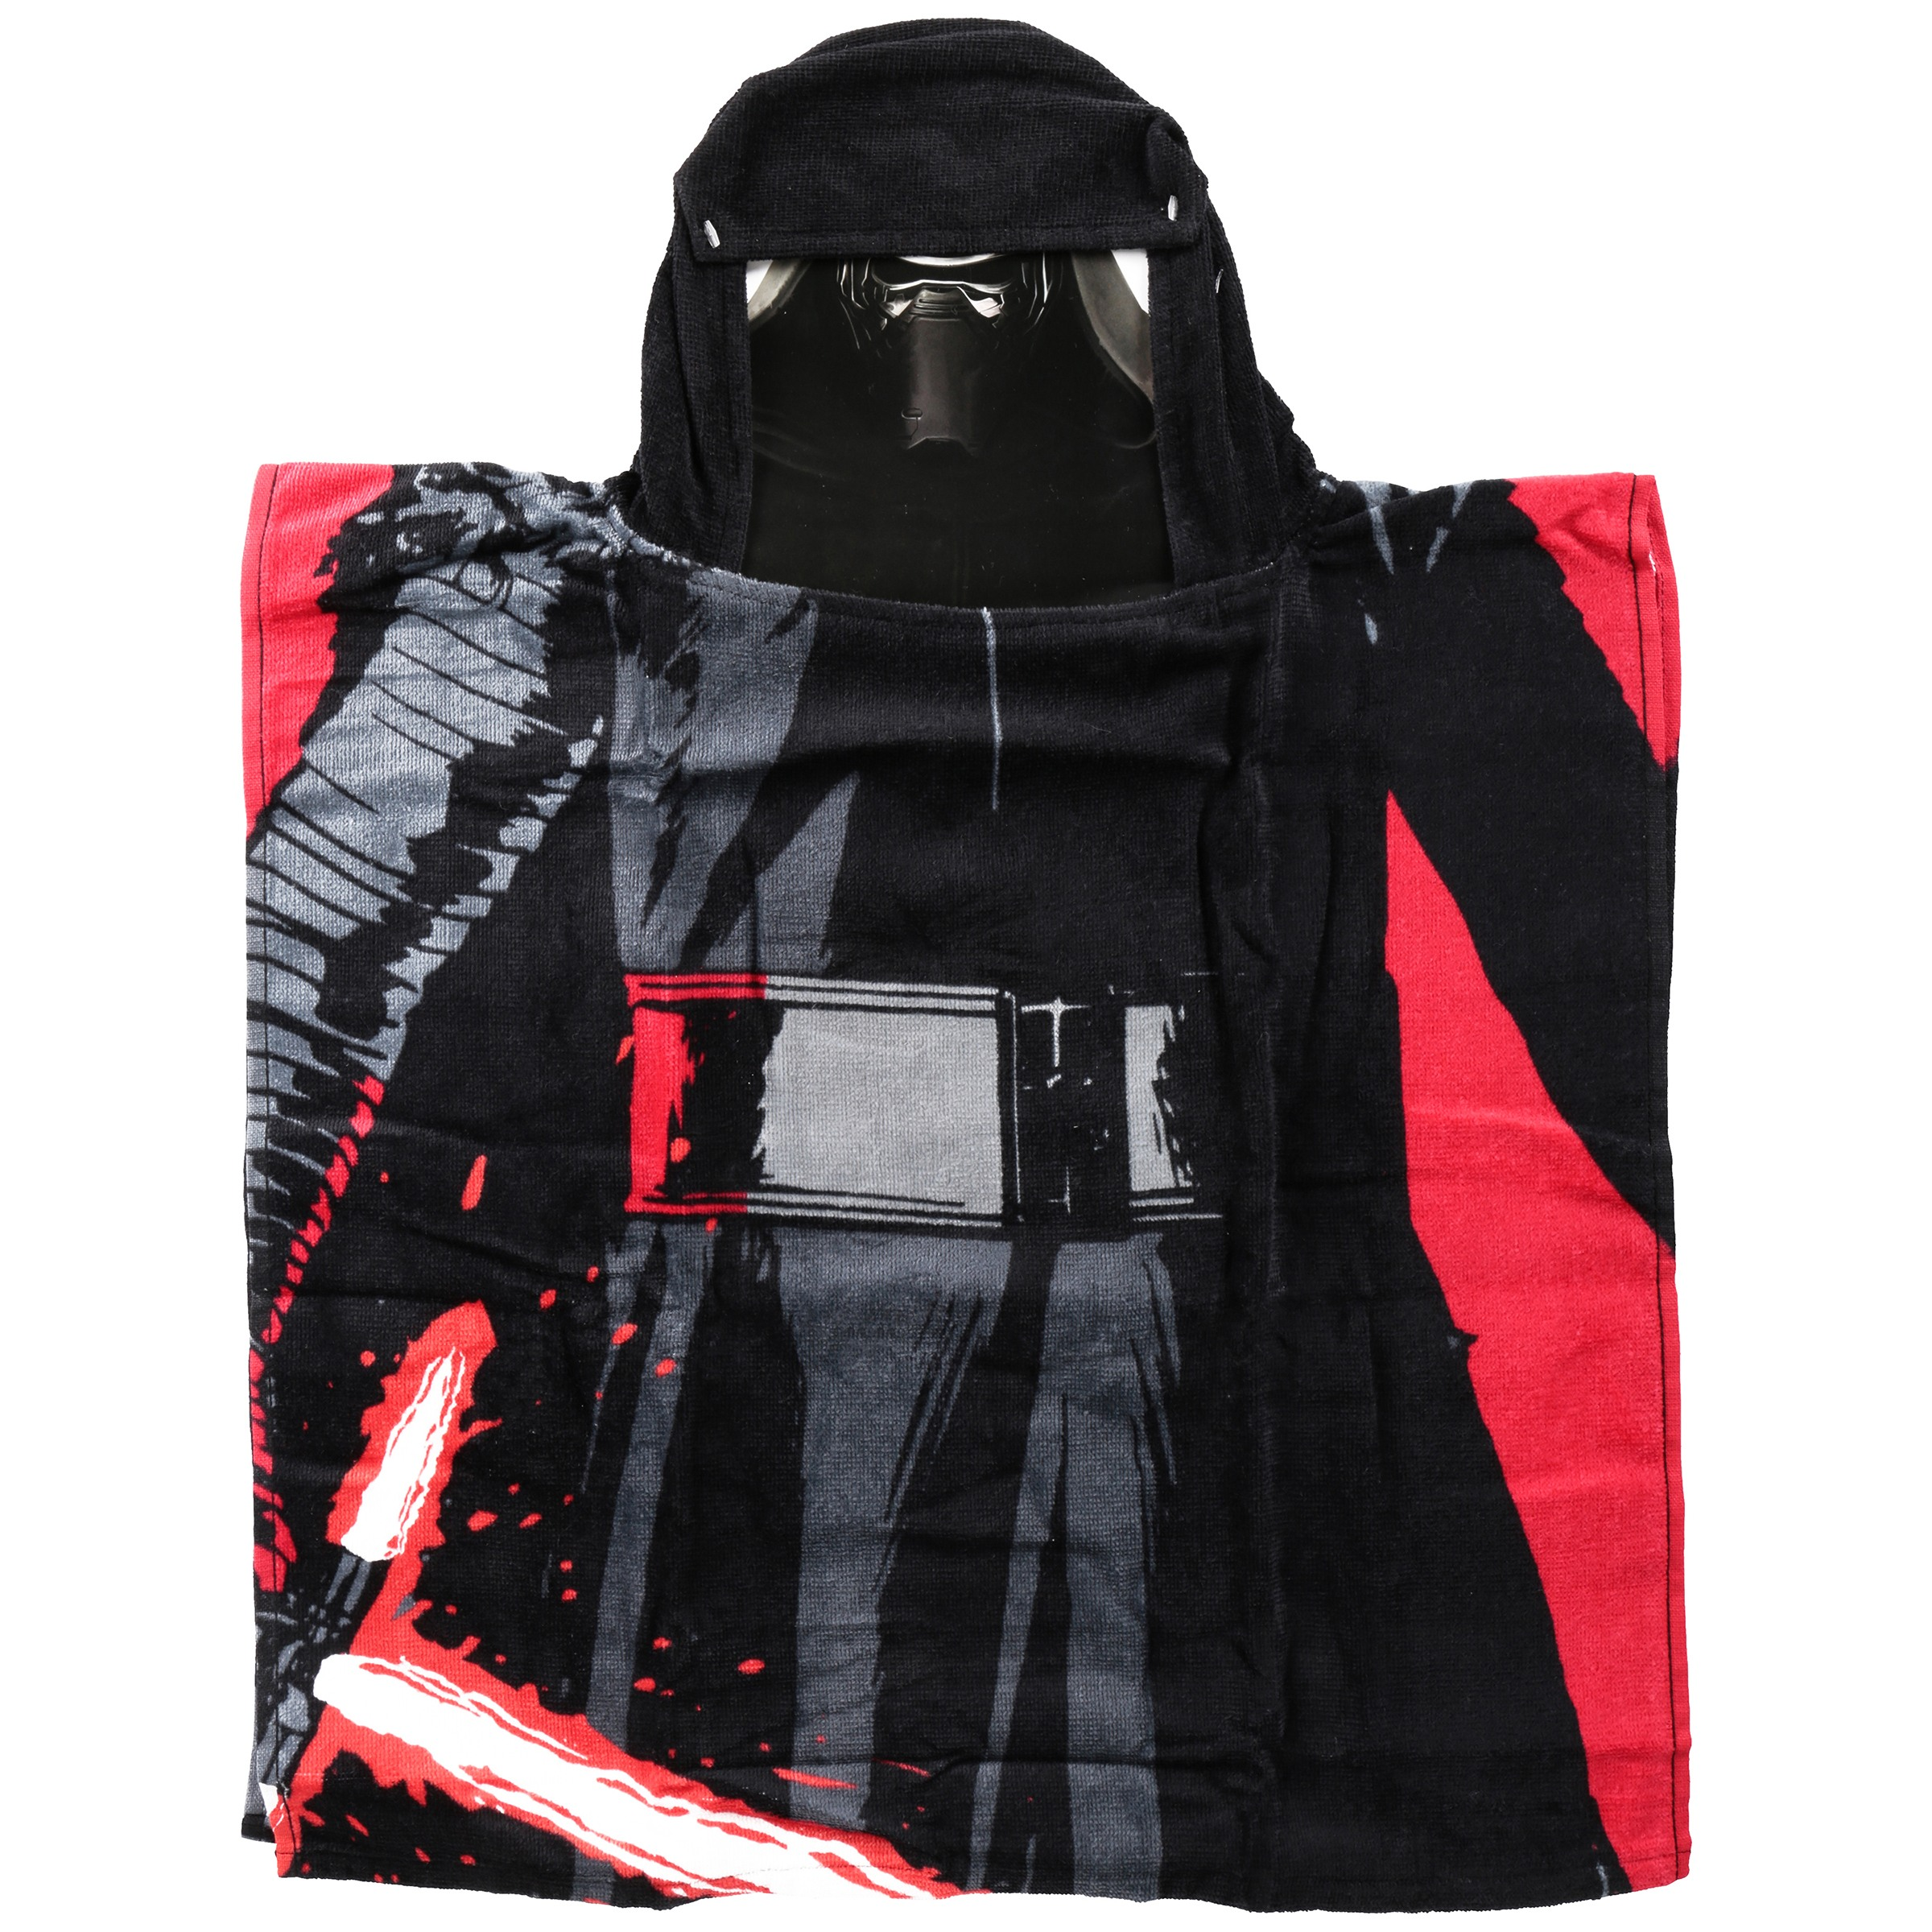 Star Wars Episode VII Hooded Poncho